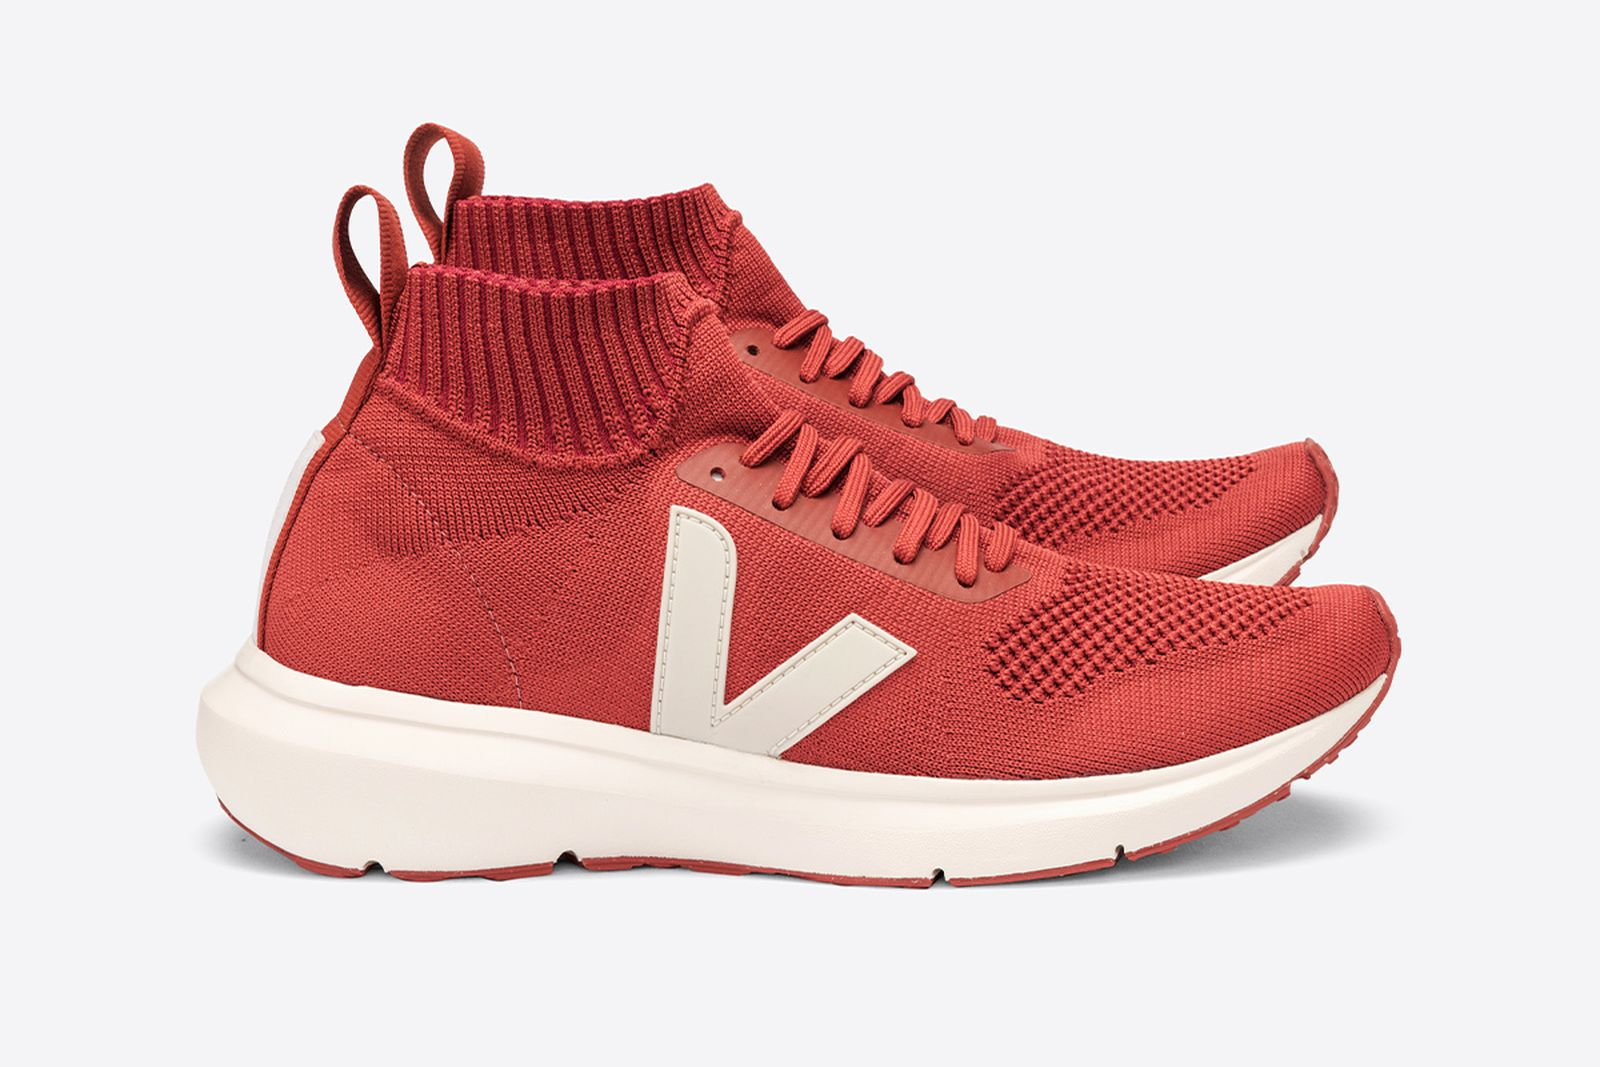 rick-owens-veja-fall-2020-release-date-price-06